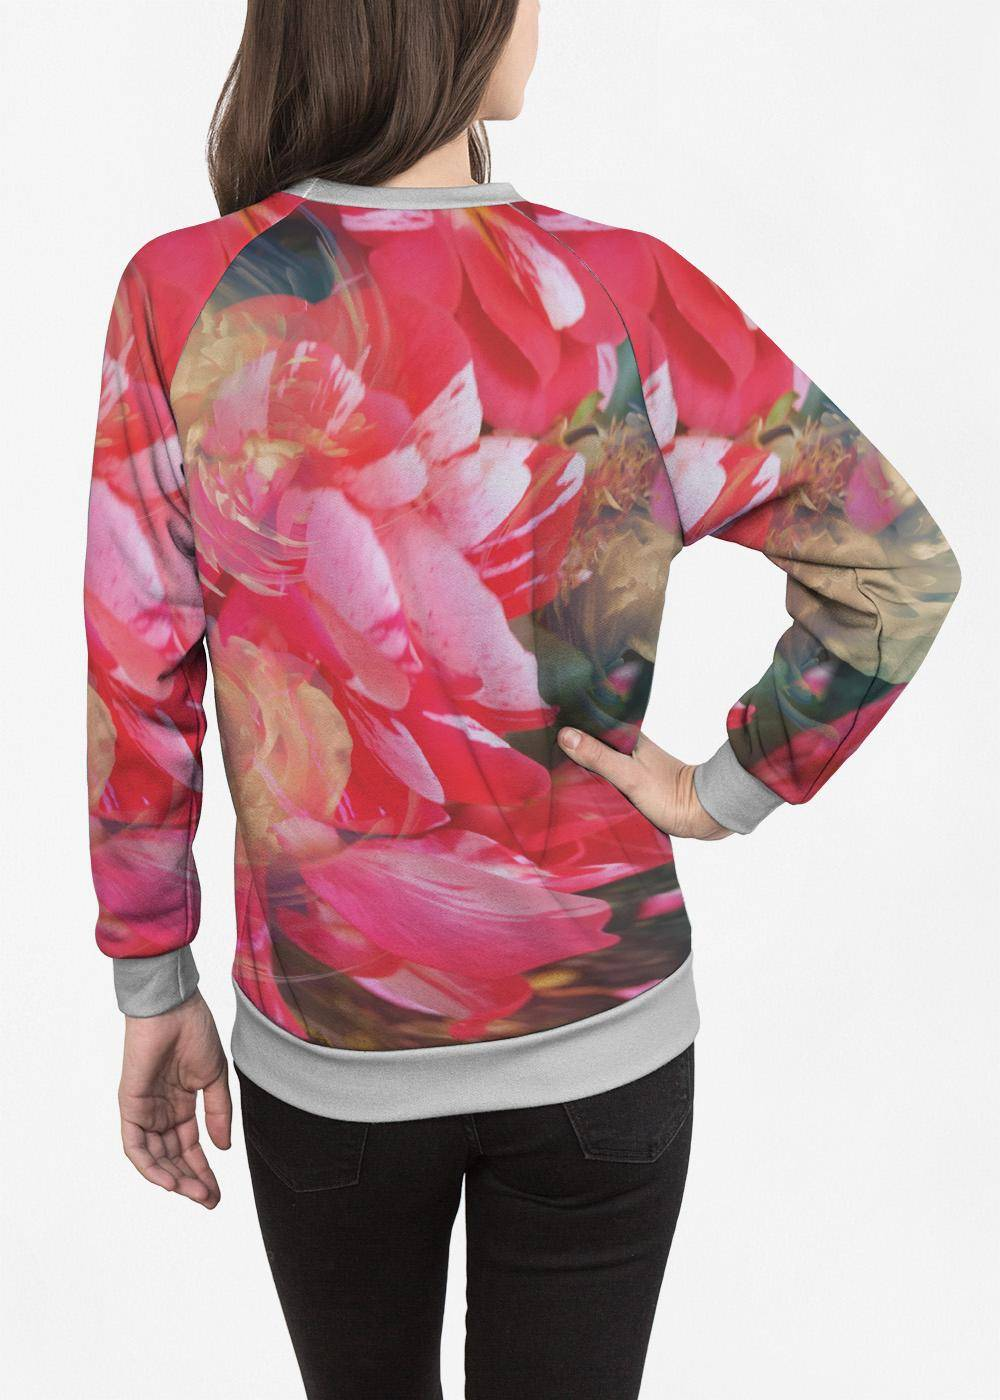 PRIDE Women's Crewneck Sweatshirt - Abstract Garden #3 by PRIDE Original Artist  - Size: Small